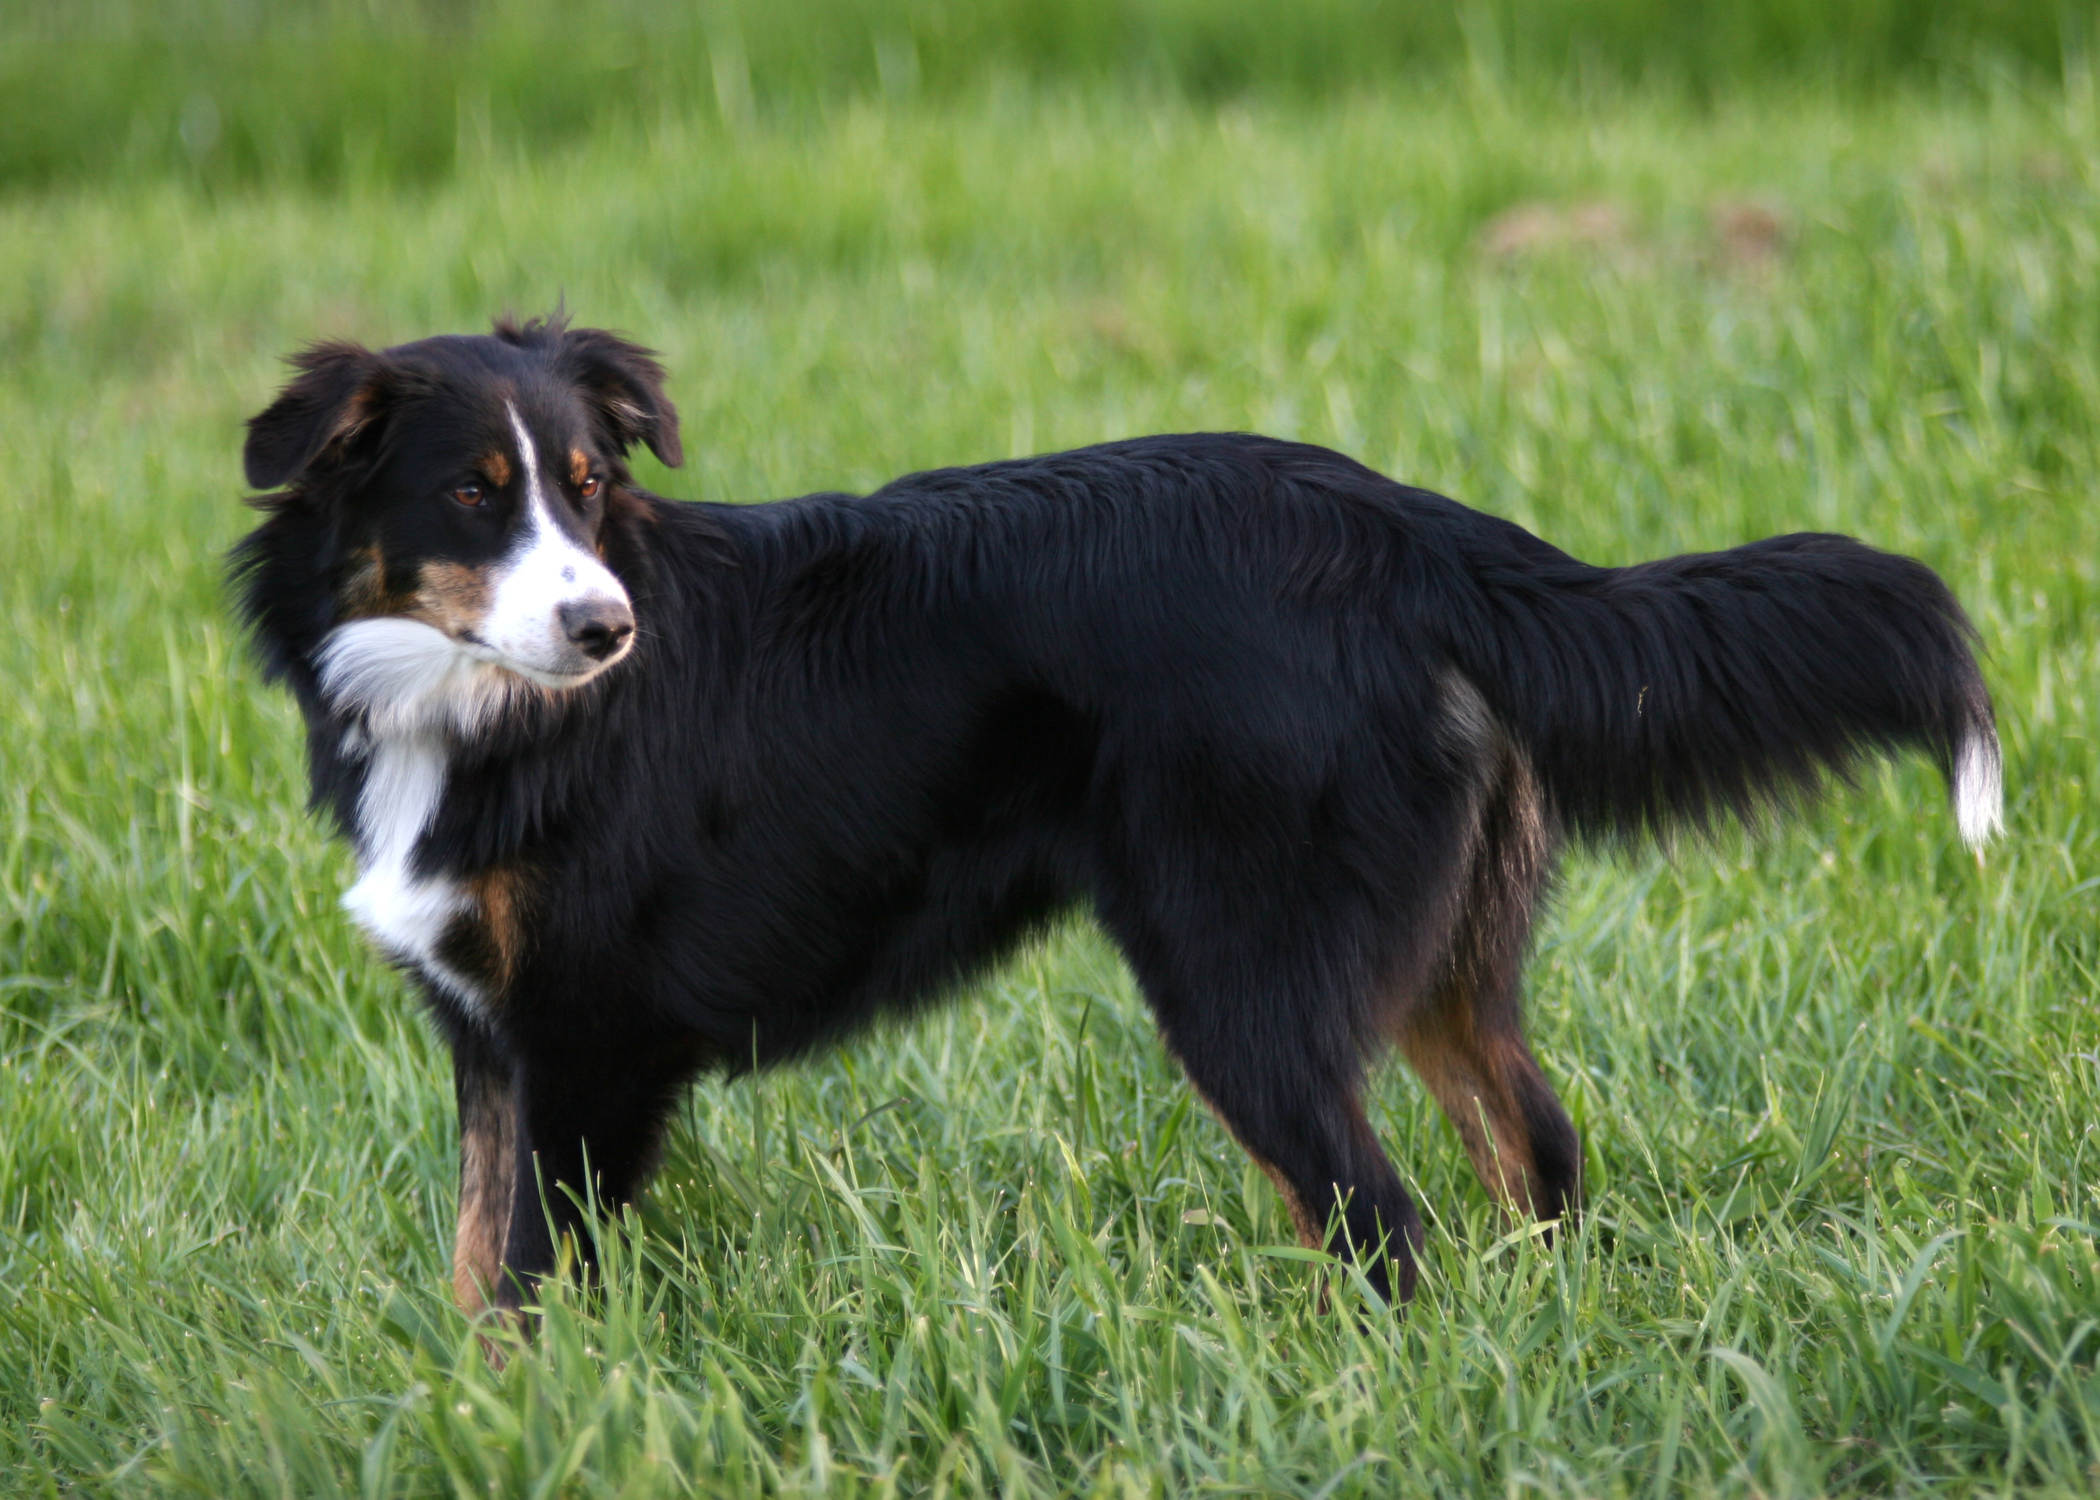 English Shepherd dog in the field photo and wallpaper ...